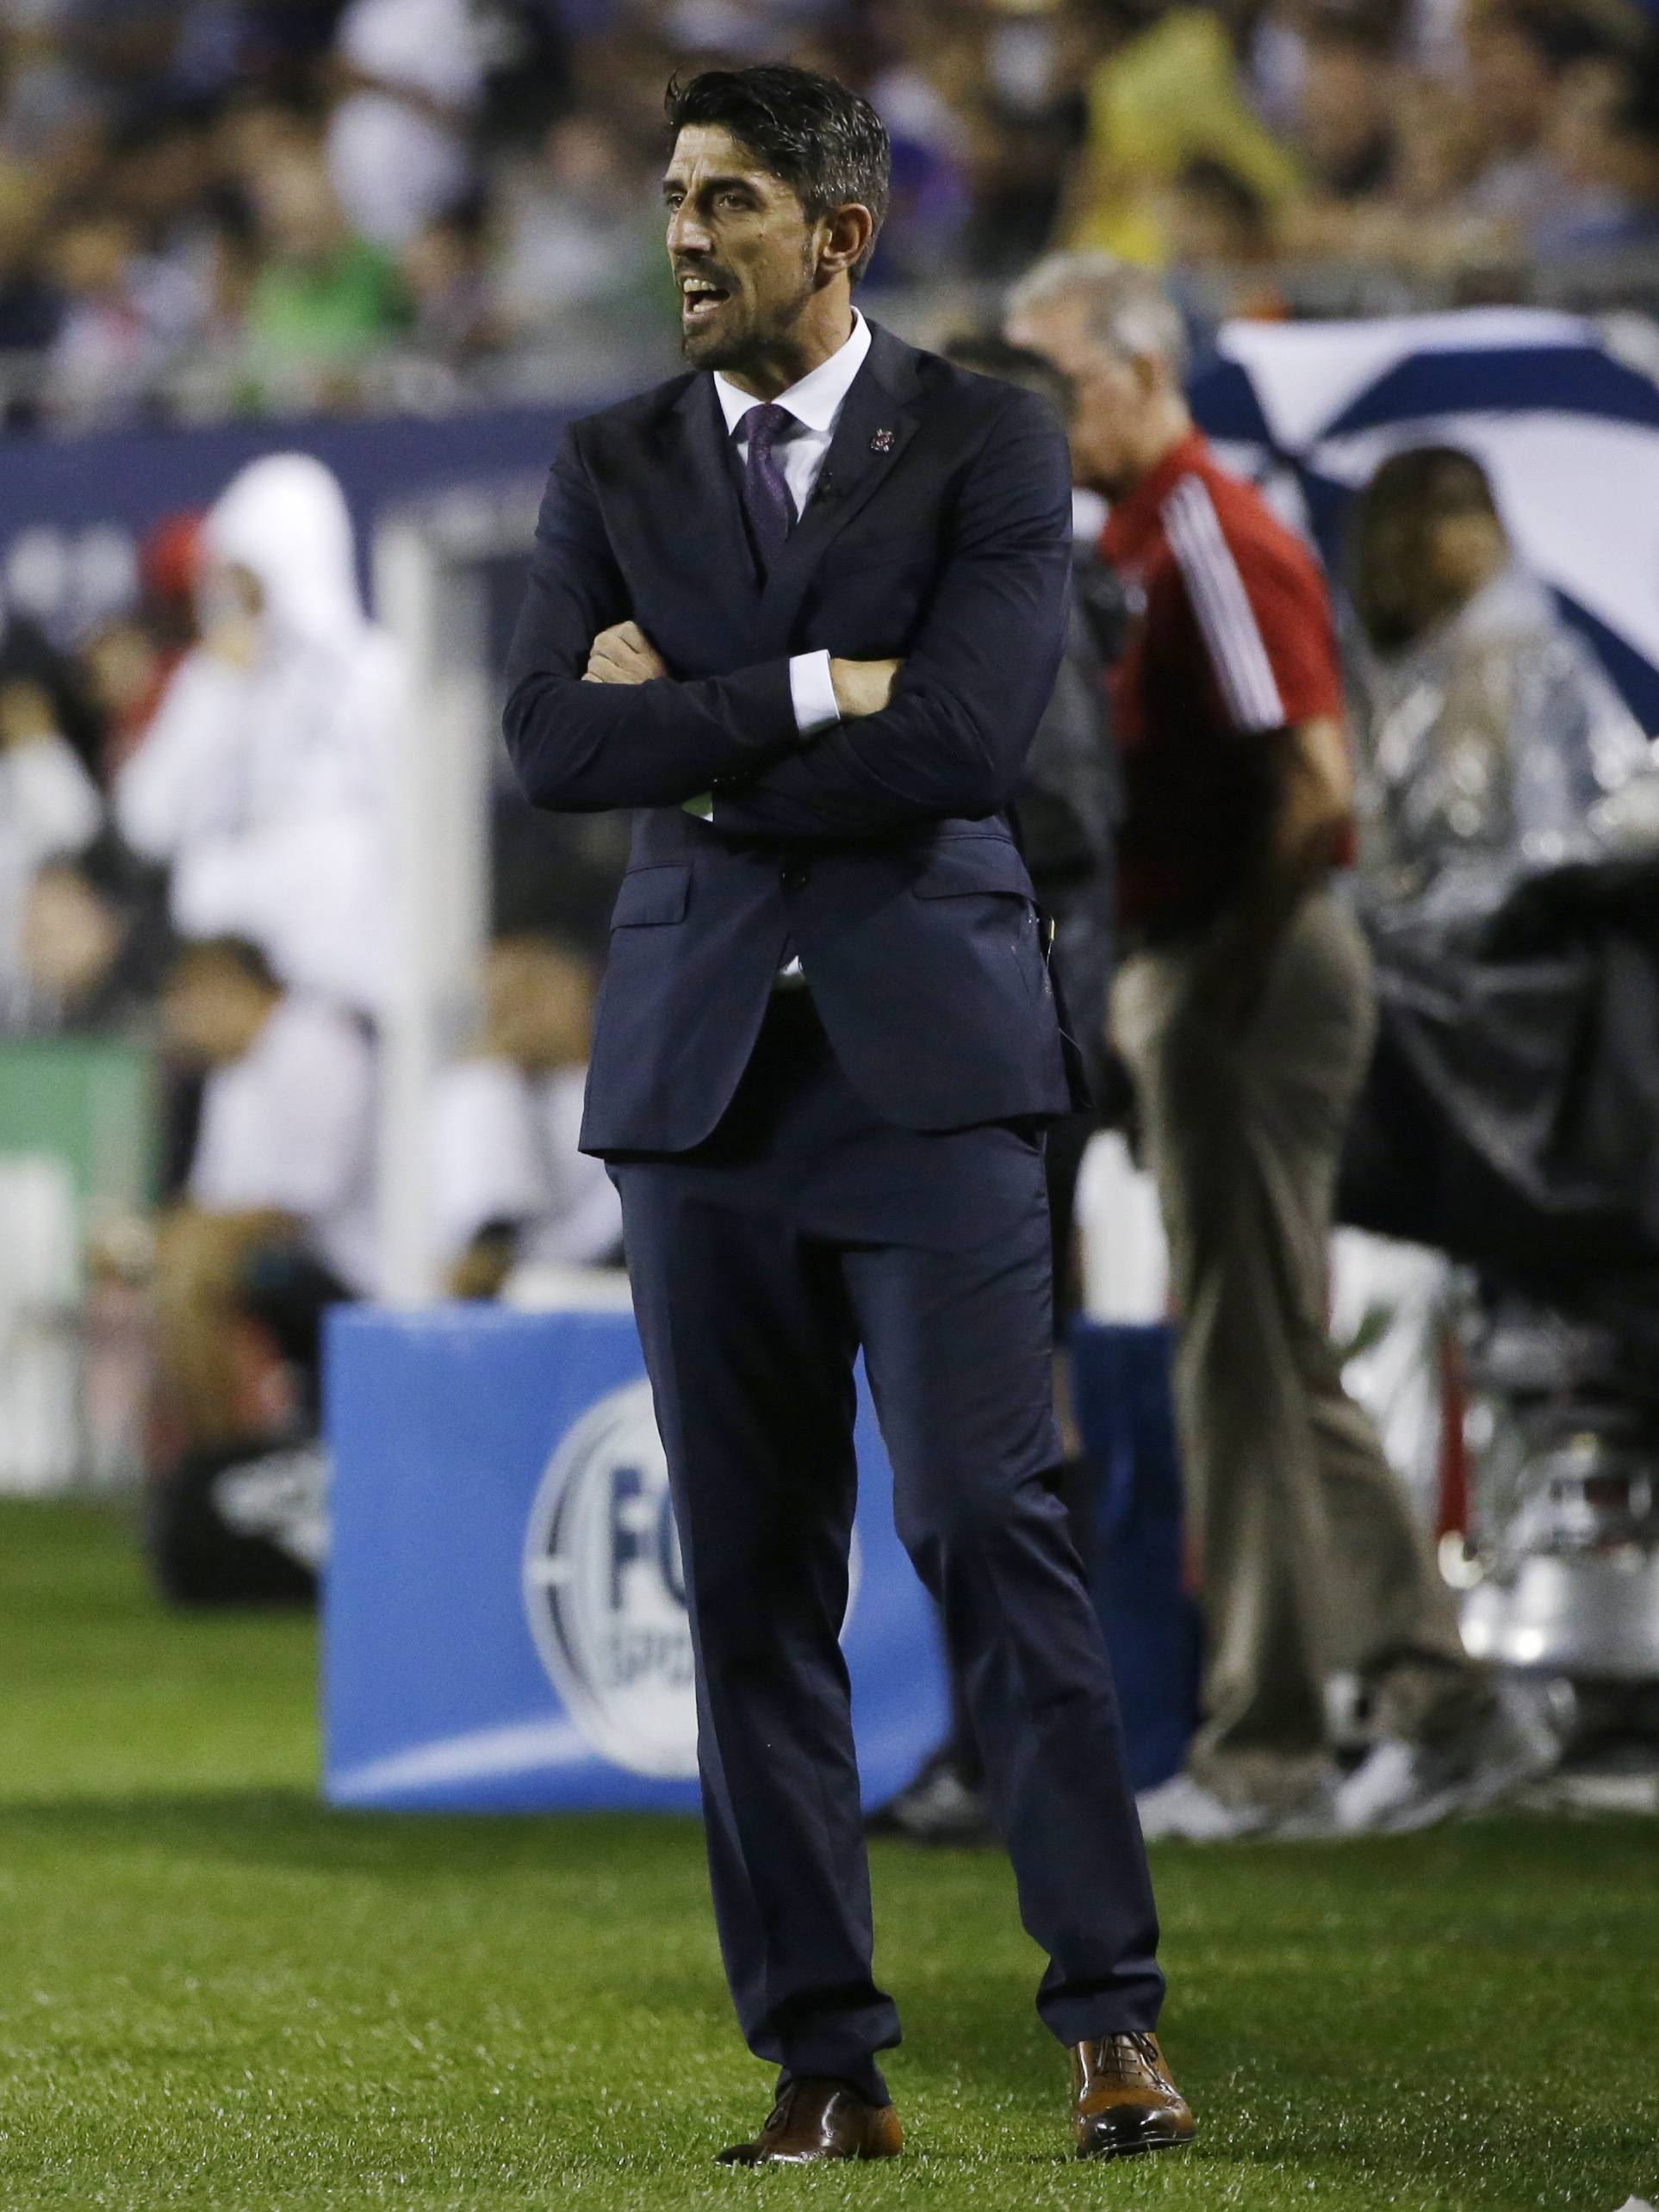 Can Paunovic get Chicago Fire out of its slump?